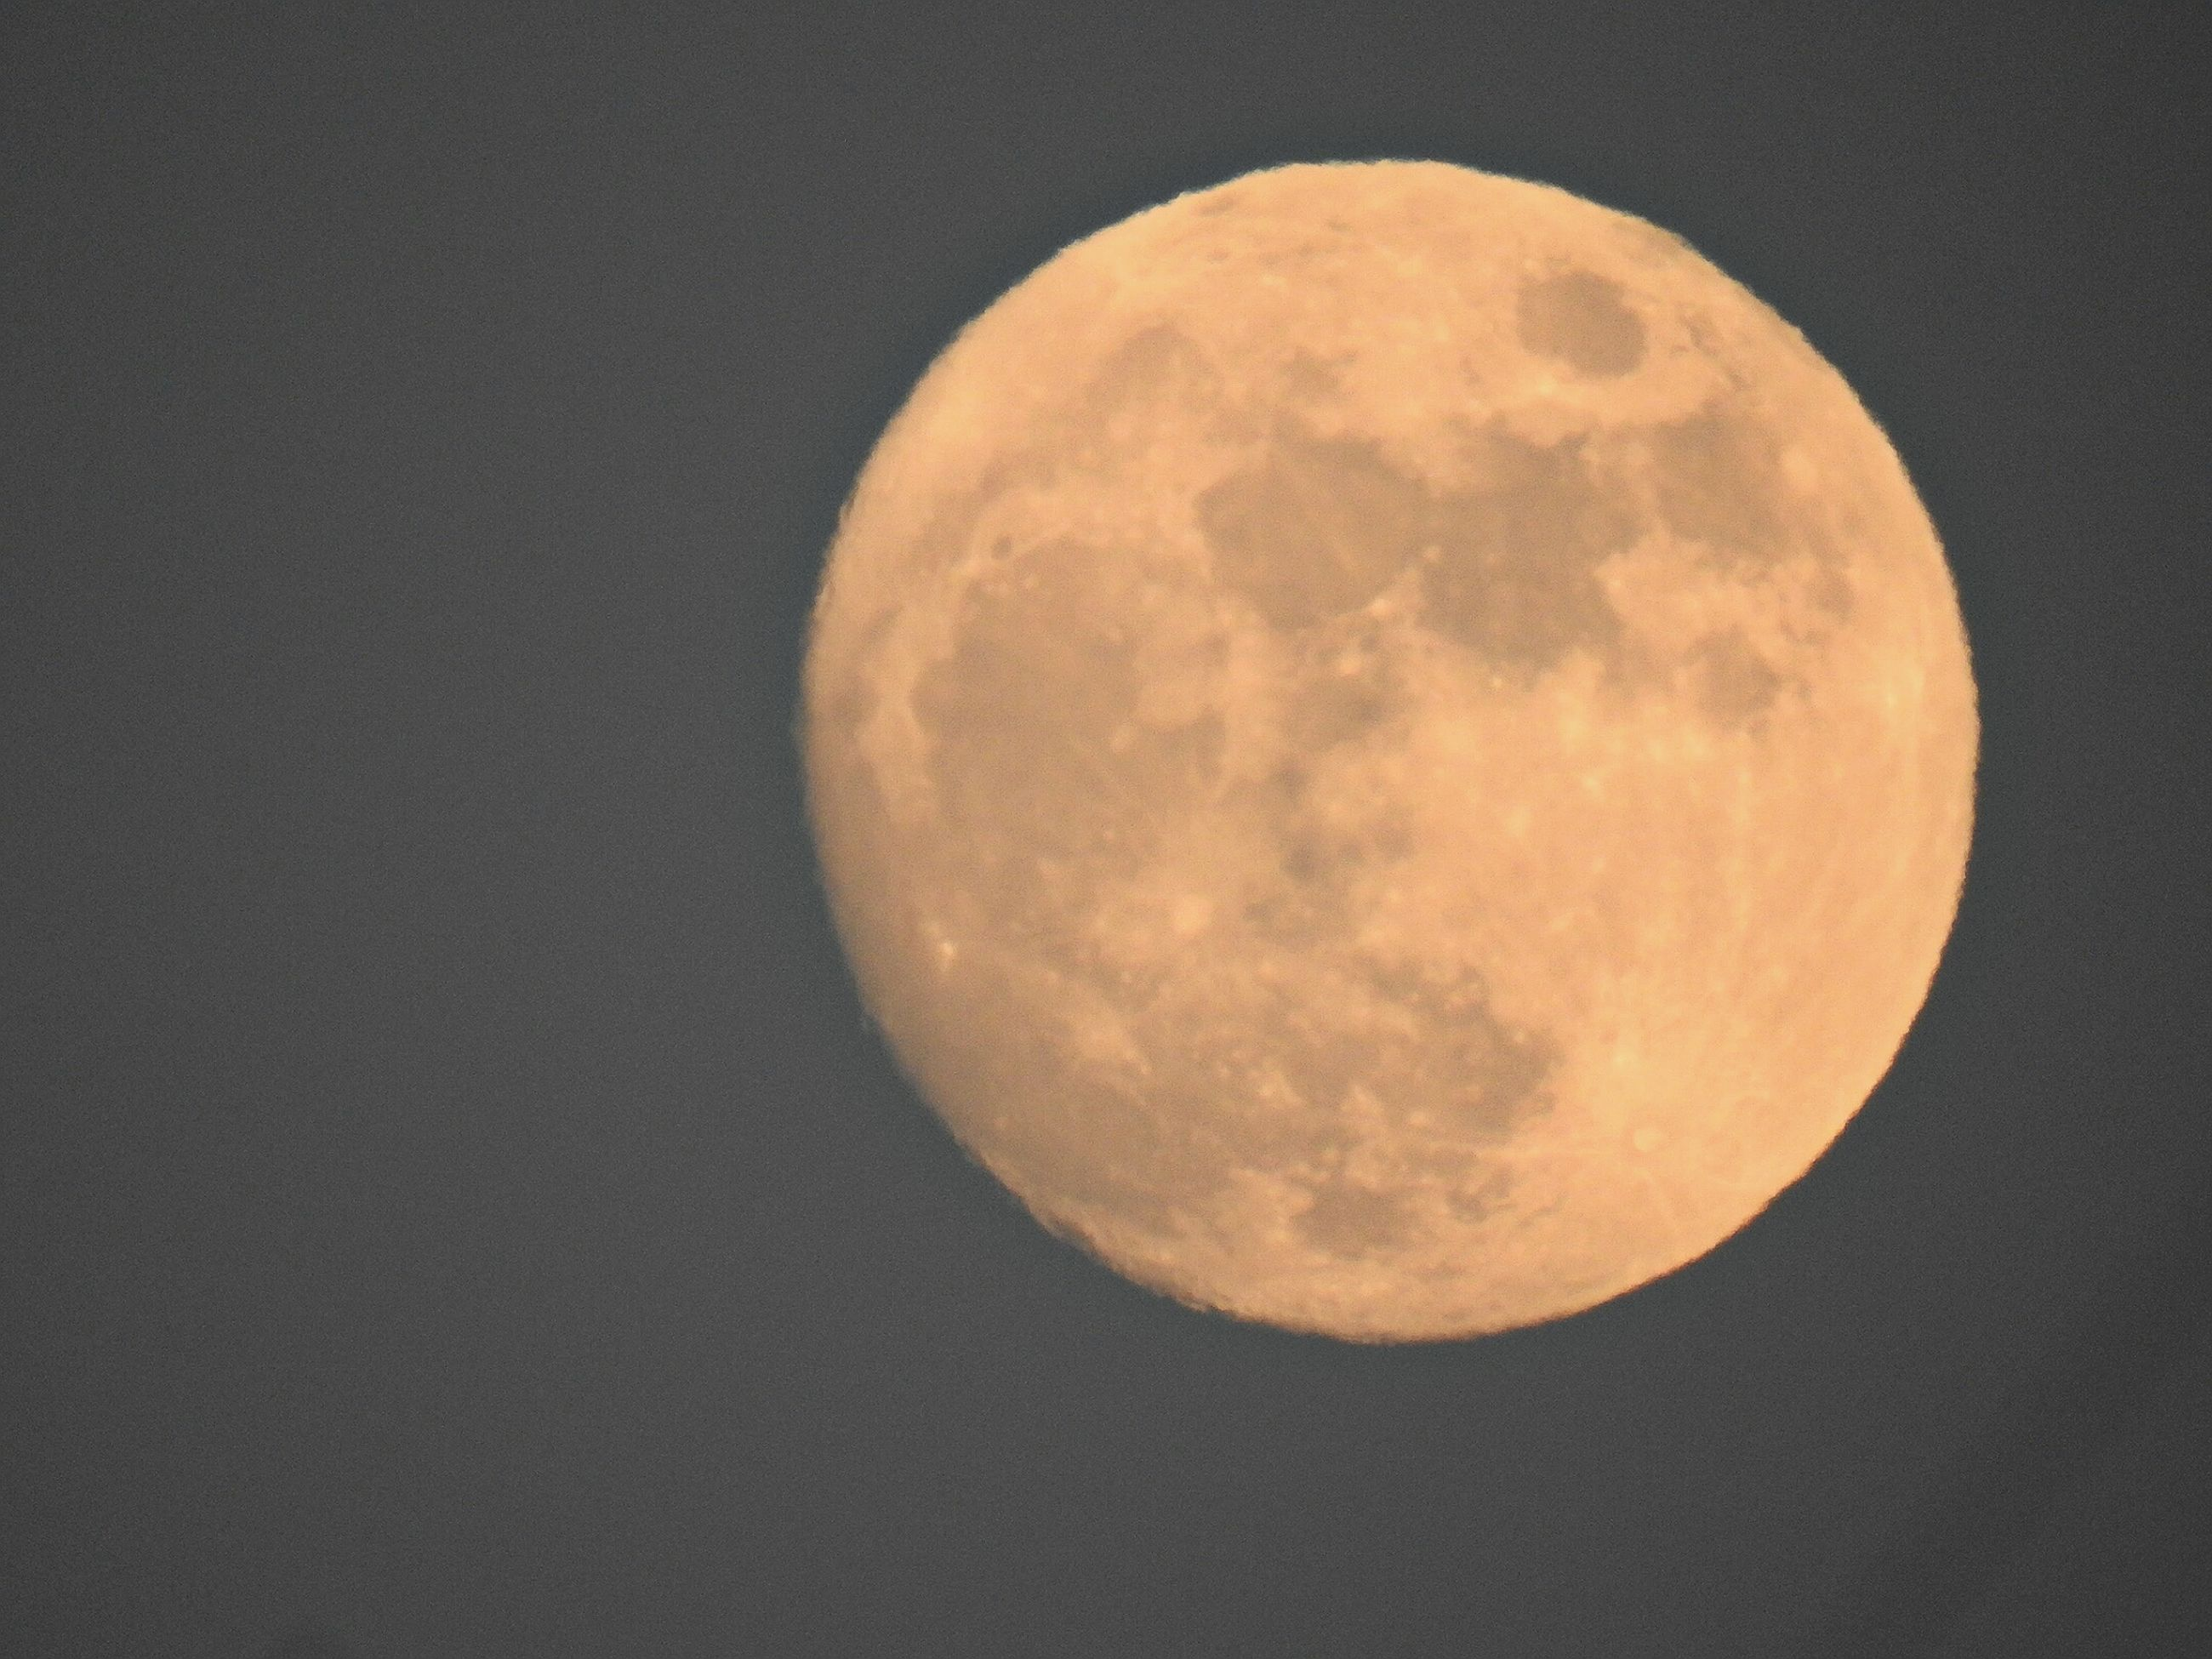 moon, astronomy, circle, sphere, full moon, planetary moon, night, moon surface, discovery, copy space, tranquility, beauty in nature, nature, space exploration, tranquil scene, scenics, no people, close-up, sky, exploration